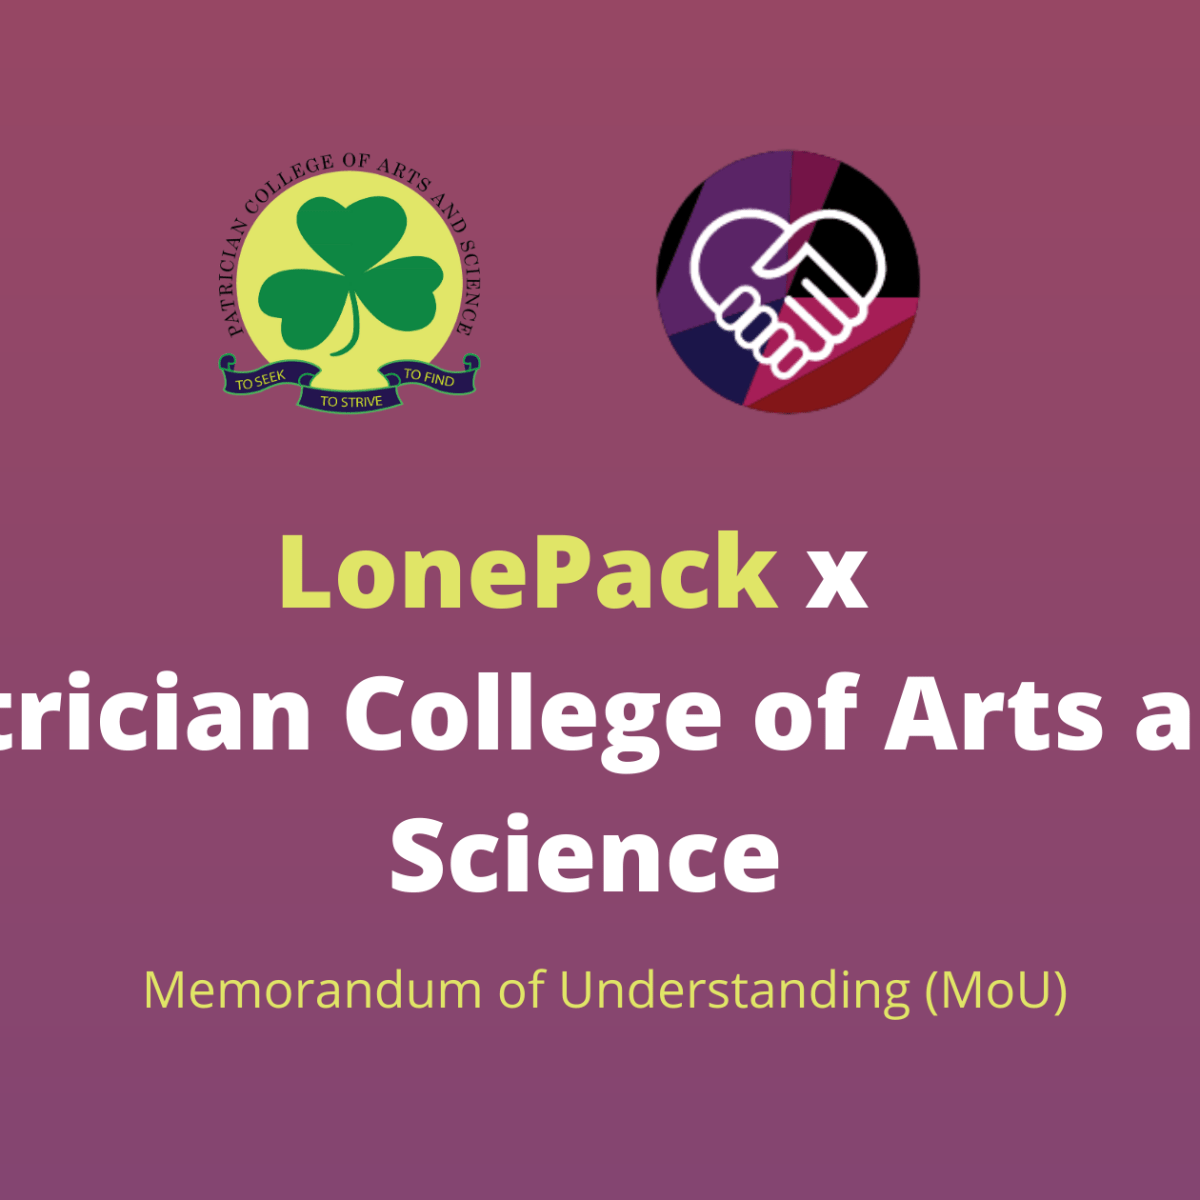 LonePack x Patrician College of Arts and Science